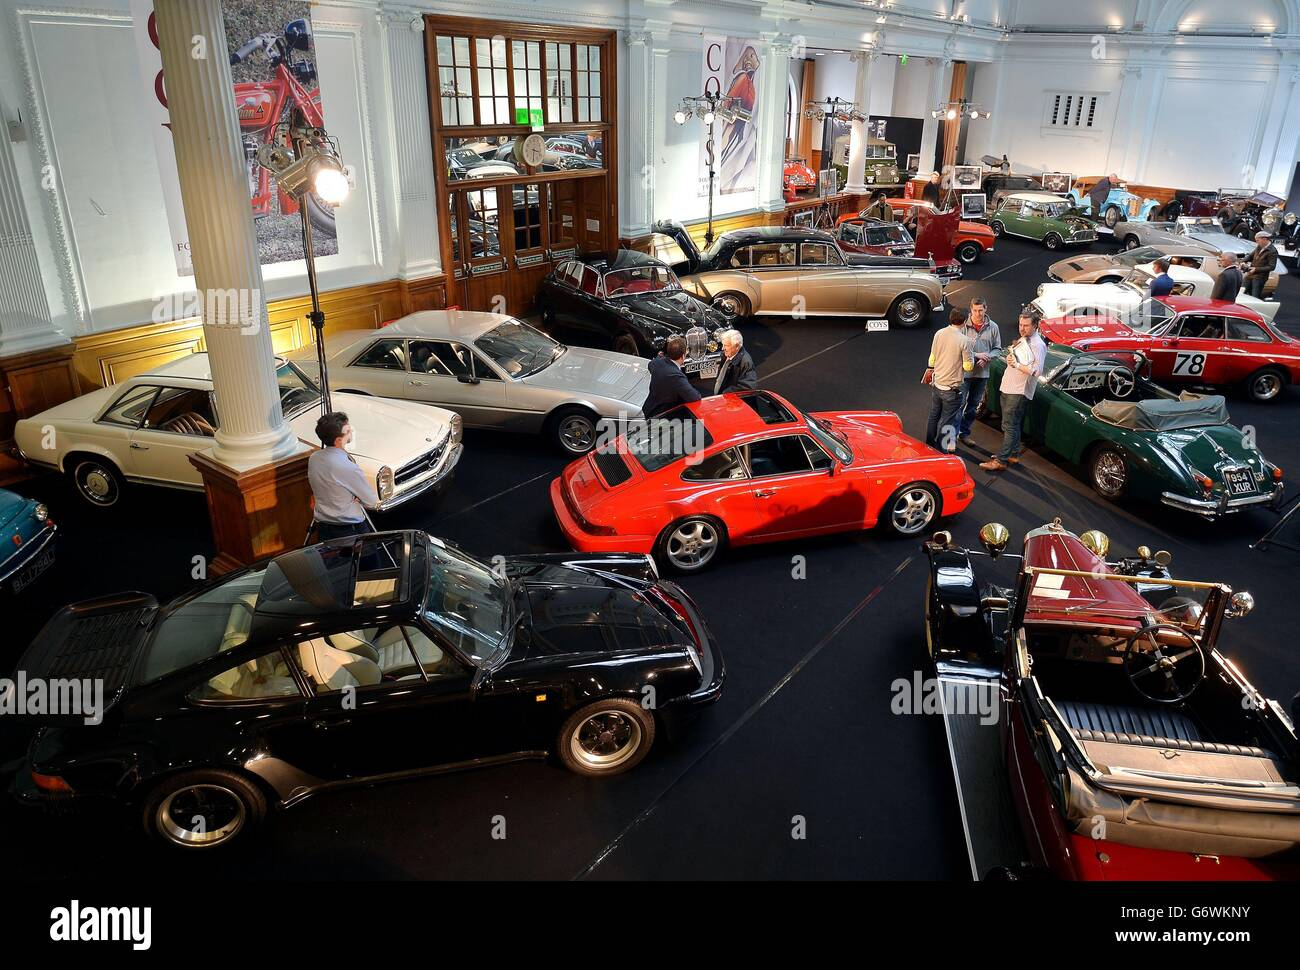 Vintage cars auction Stock Photo, Royalty Free Image: 107514455 ...